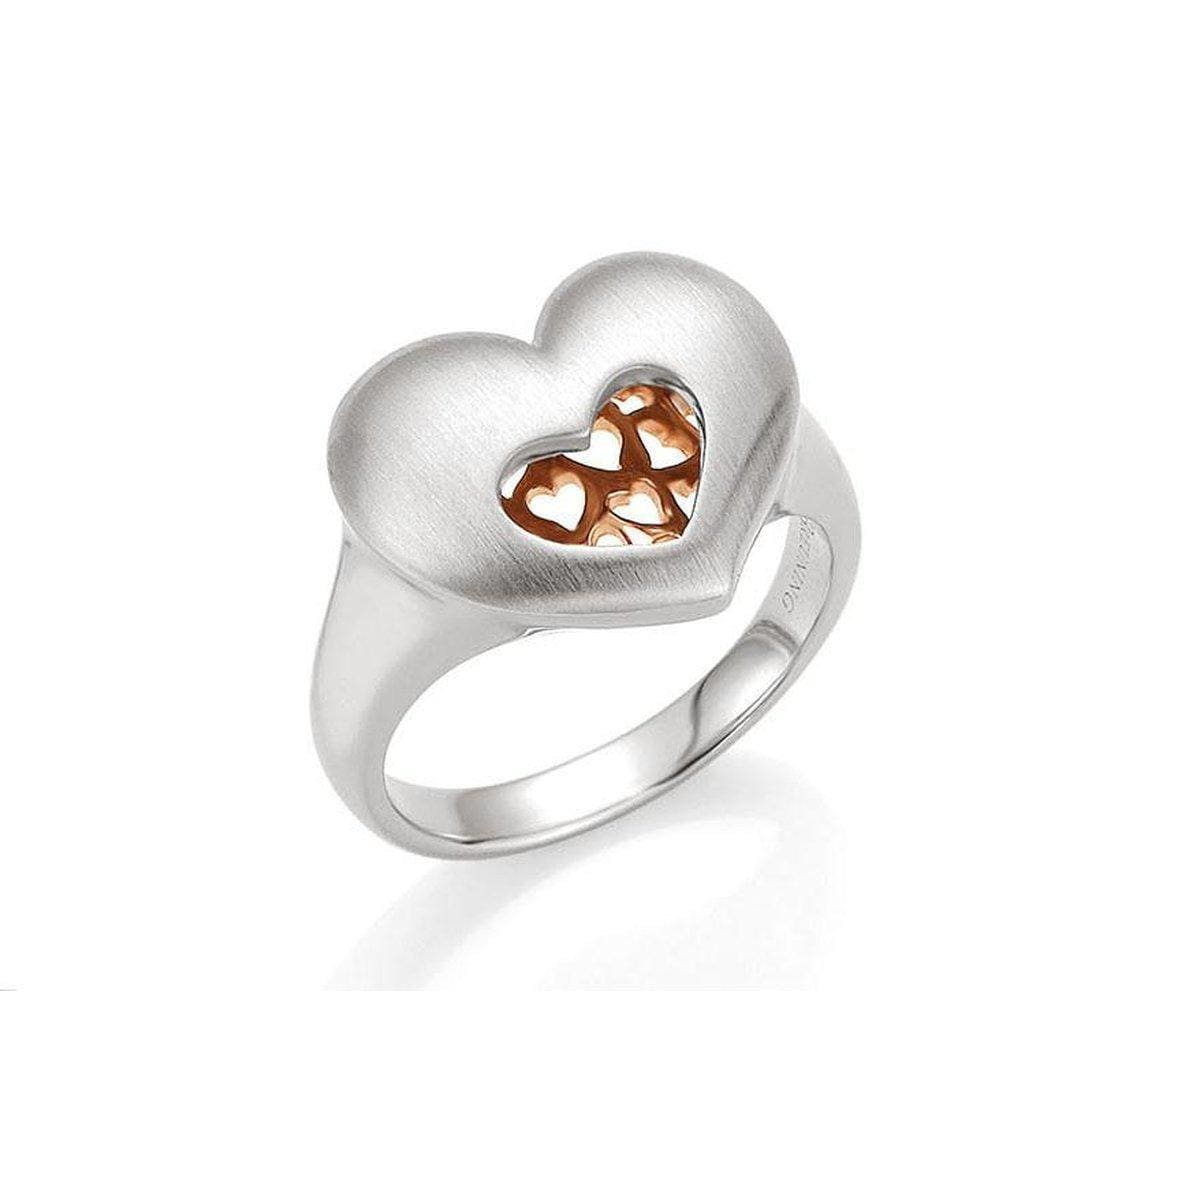 Rose Gold & Rhodium Plated Sterling Silver Ring - 44/01417-Breuning-Renee Taylor Gallery